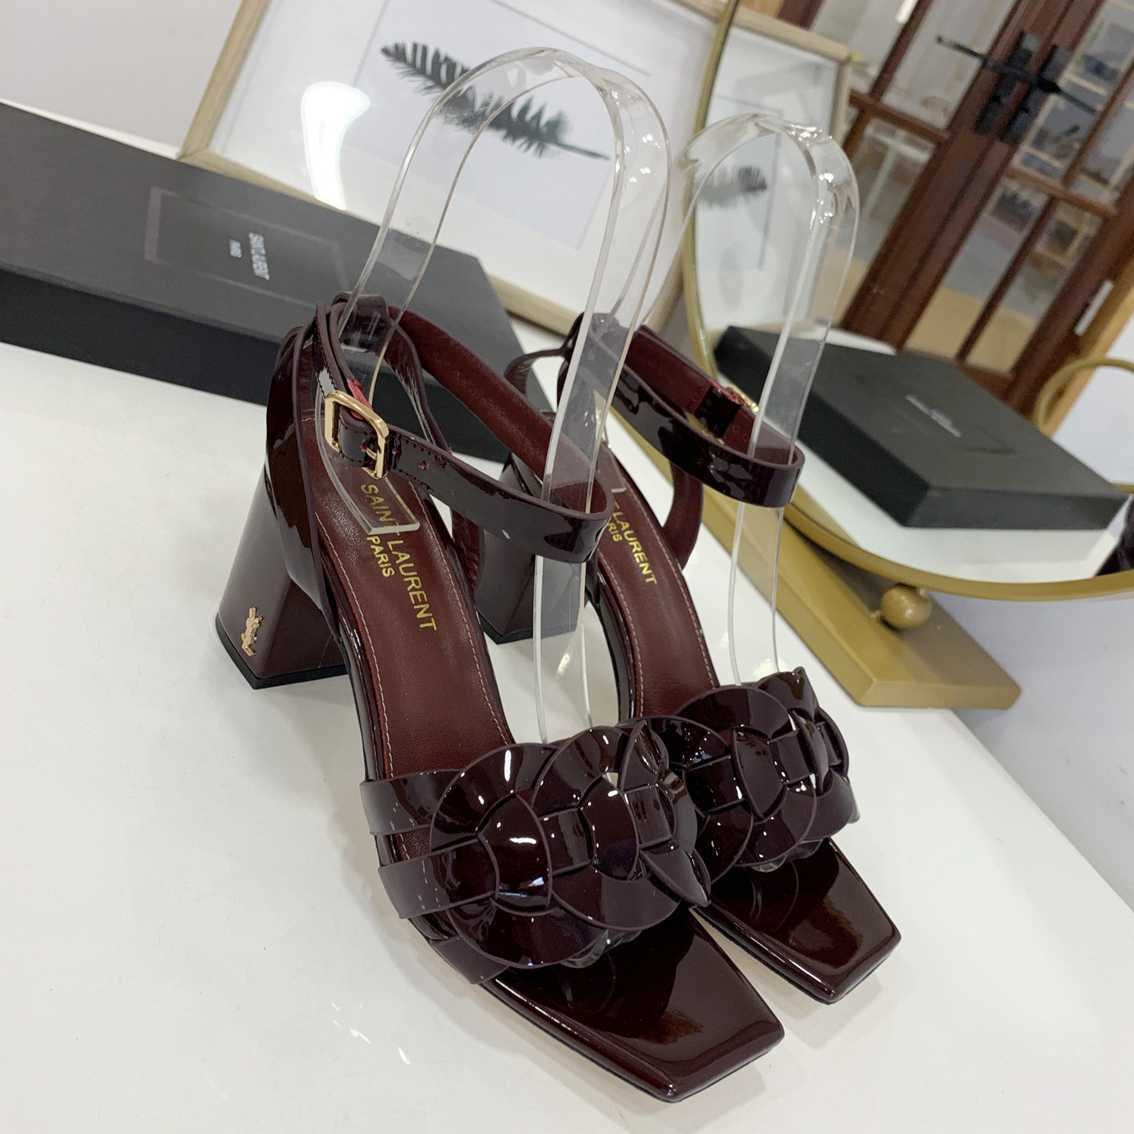 Image of ysl women casual shoes boots fashionable casual leather women heels sandal shoes 84